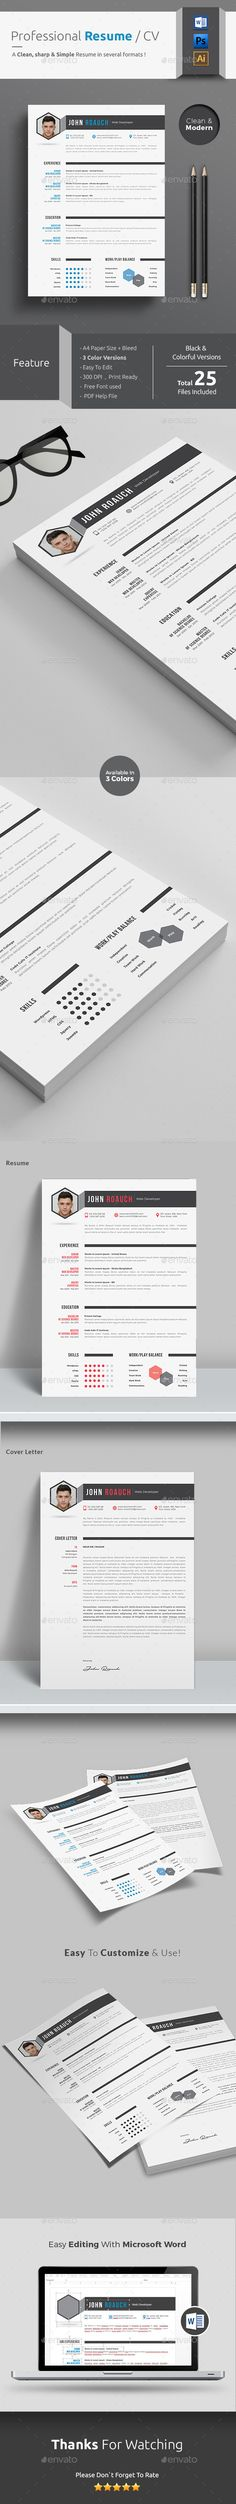 Resume CV Template with Word Resume Cover Letter Template  is a professional resume template. This simple resume template is really great. http://graphicriver.net/item/professional-resumecv-/13701047?ref=themedevisers